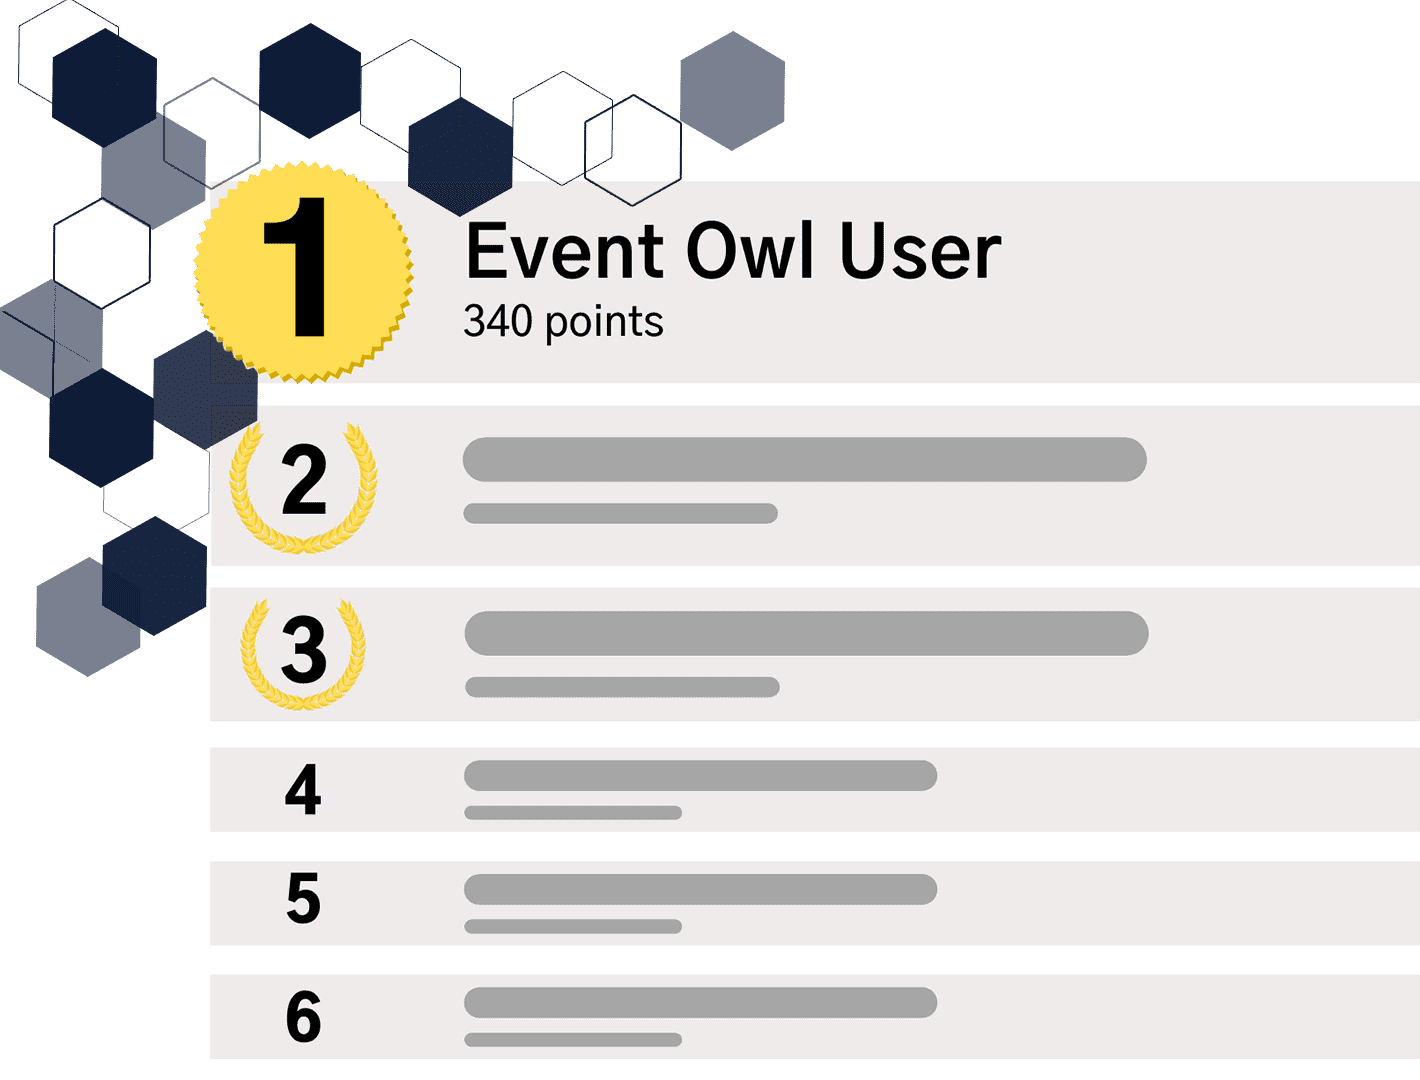 https://eventowl.com/wp-content/uploads/2020/10/Gamification1.png